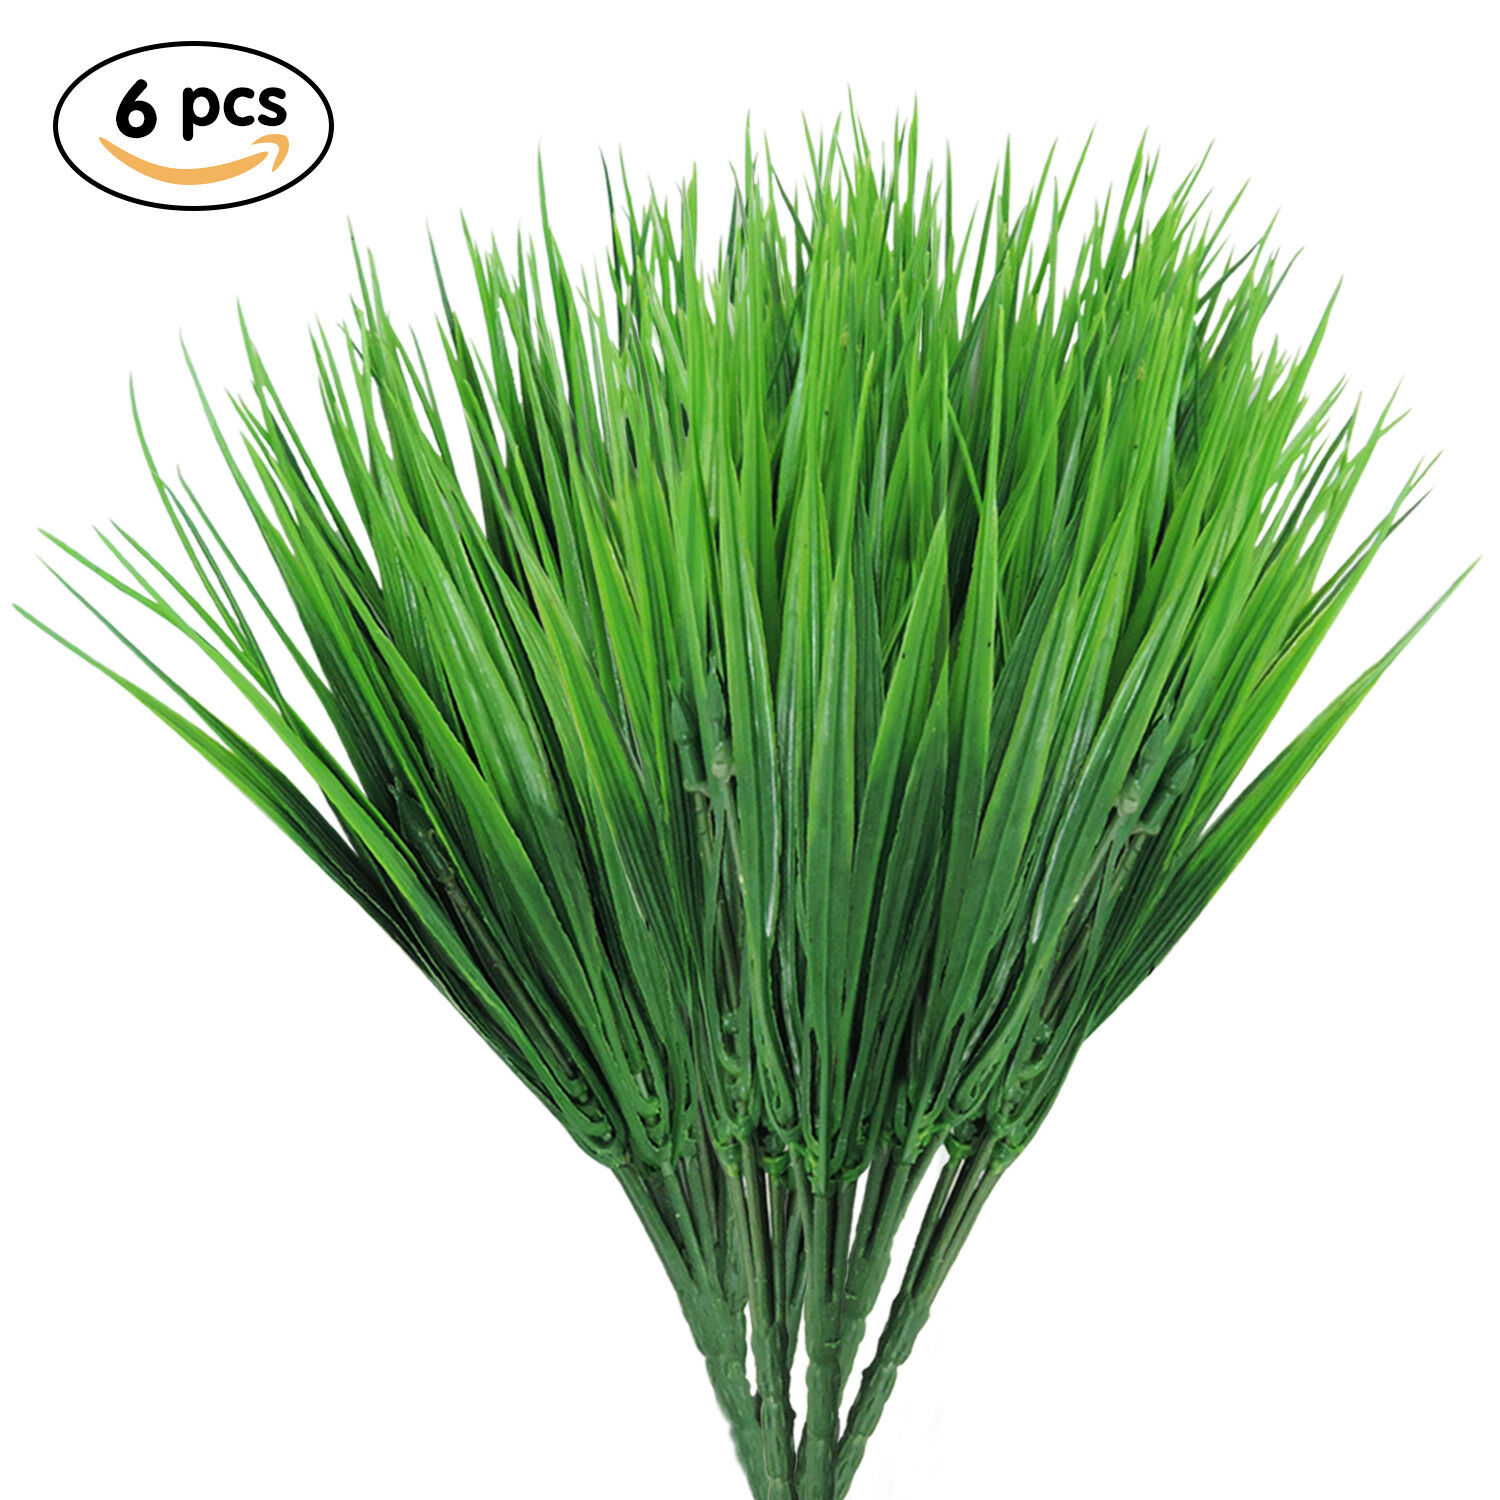 Artificial Plants Wheat Grass Fake Plastic Greenery Shrubs Wheat Grass Bushes...